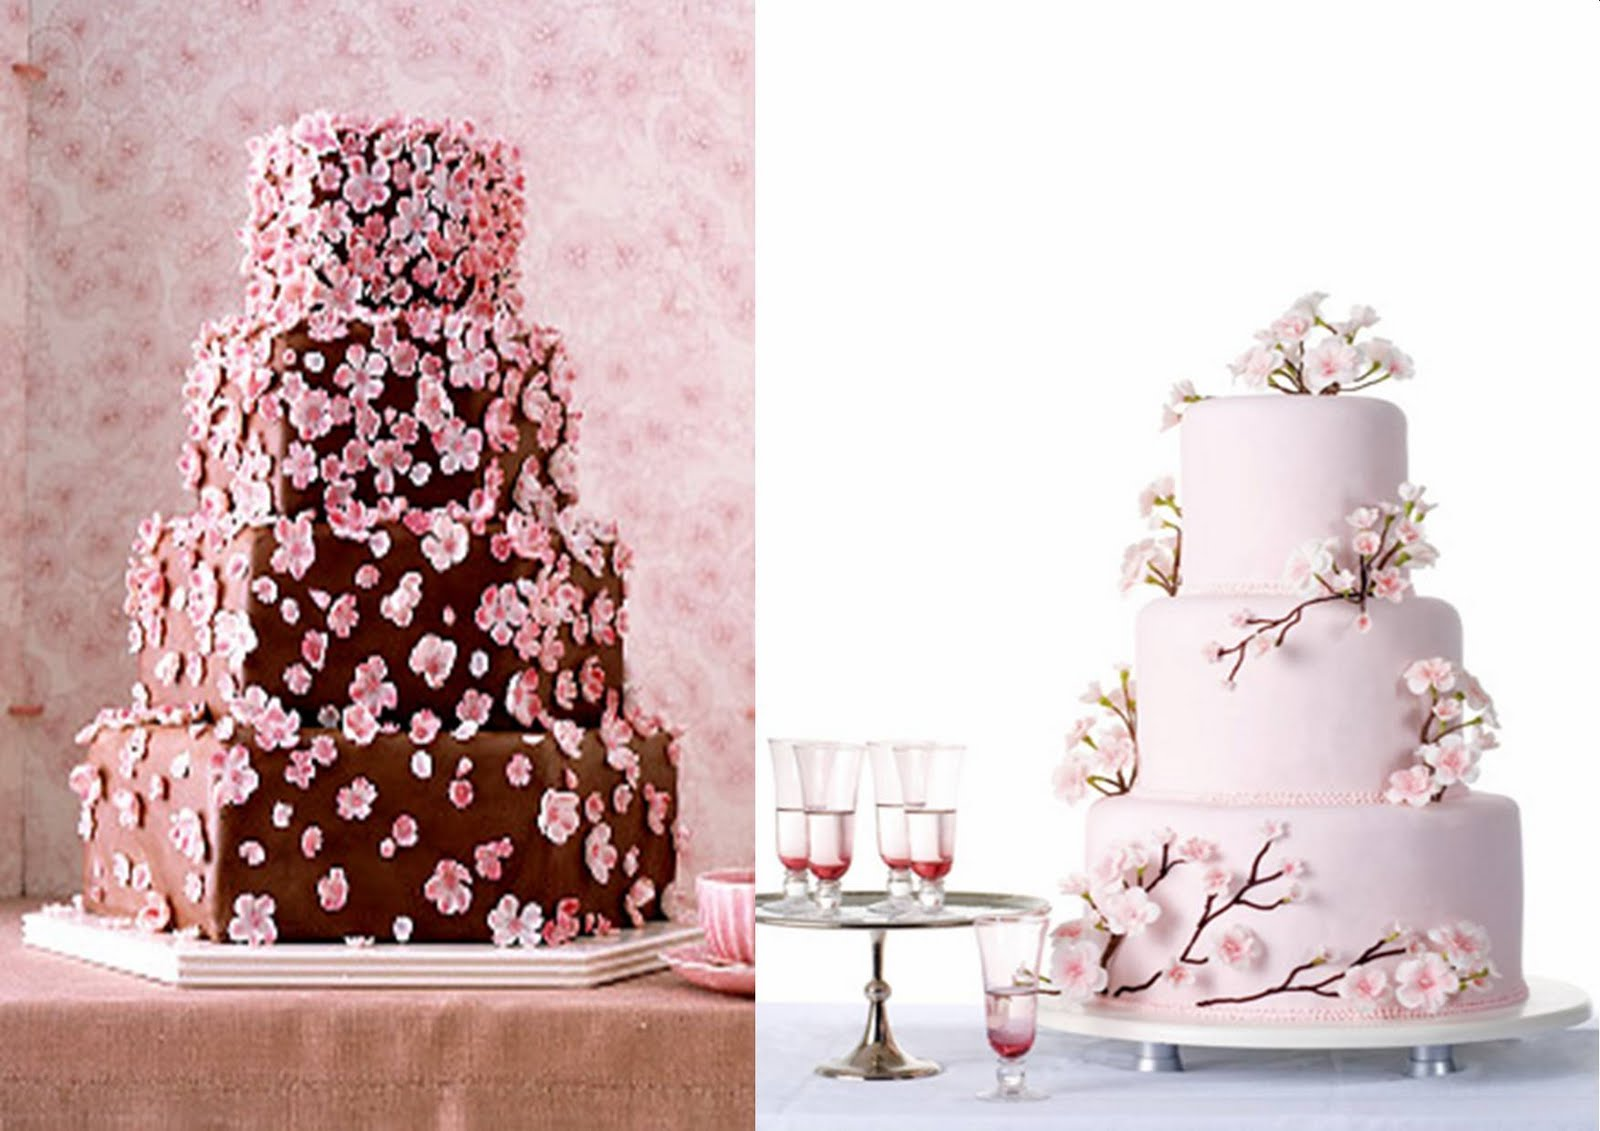 Icing Designs: Sweet Cherry Blossoms